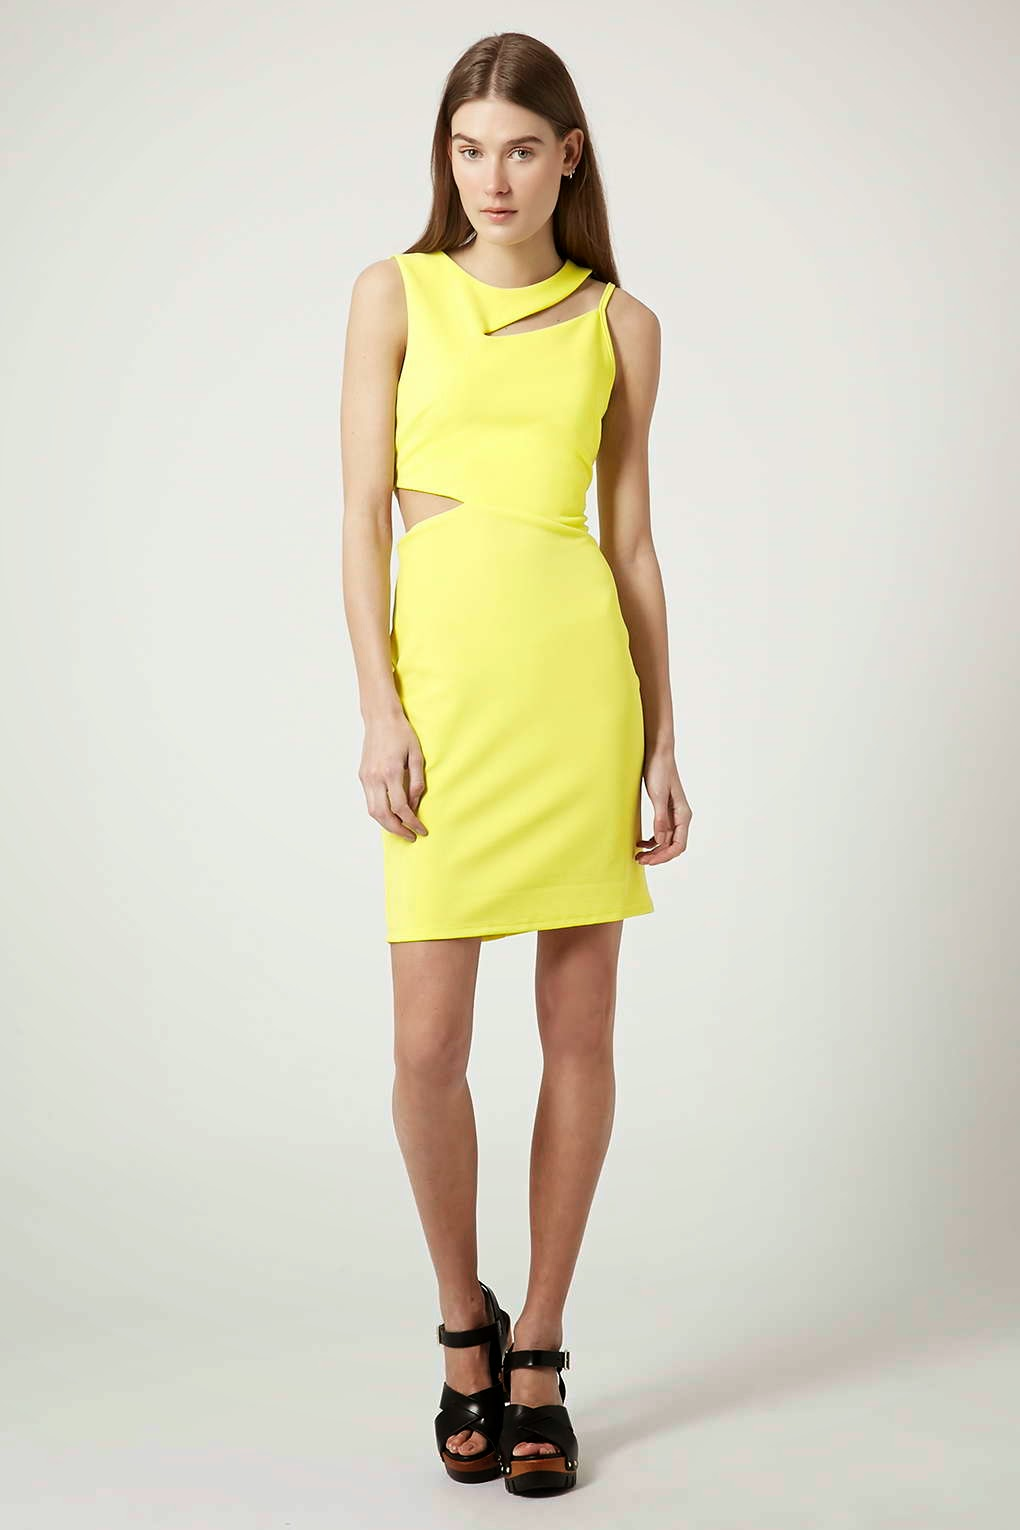 topshop yellow dress,